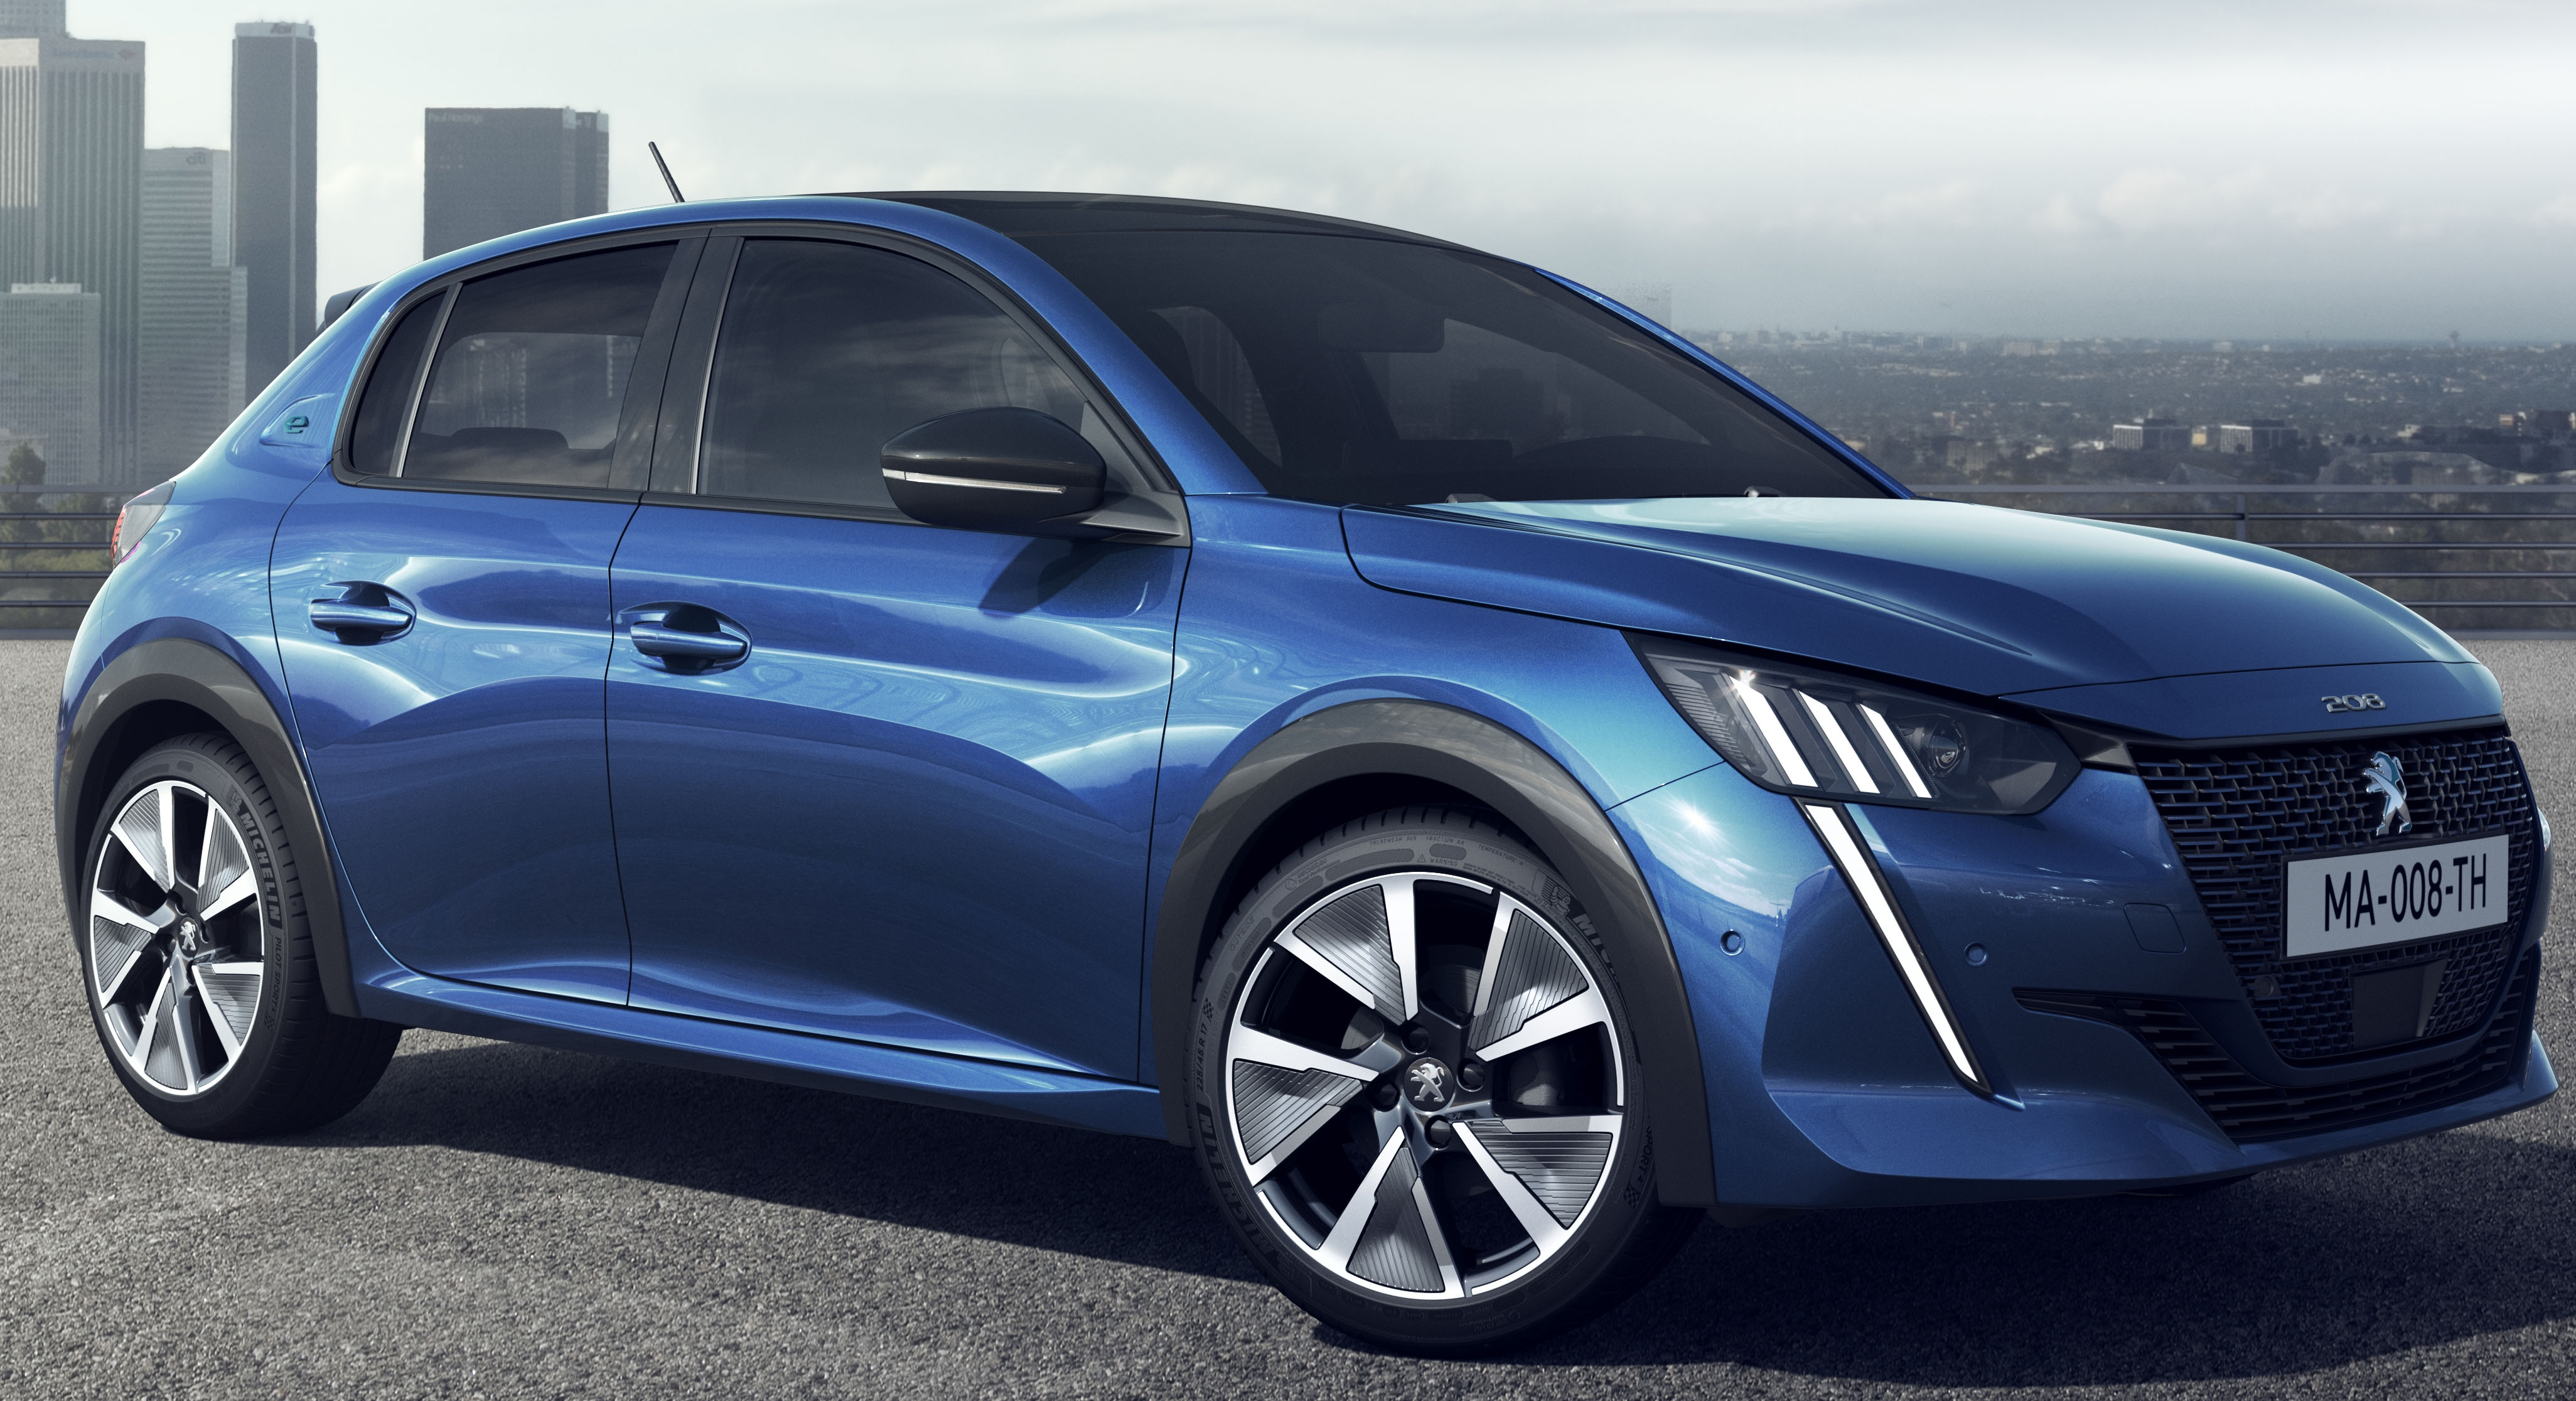 2019 Opel Corsa Photos Leak Here S What We Know So Far